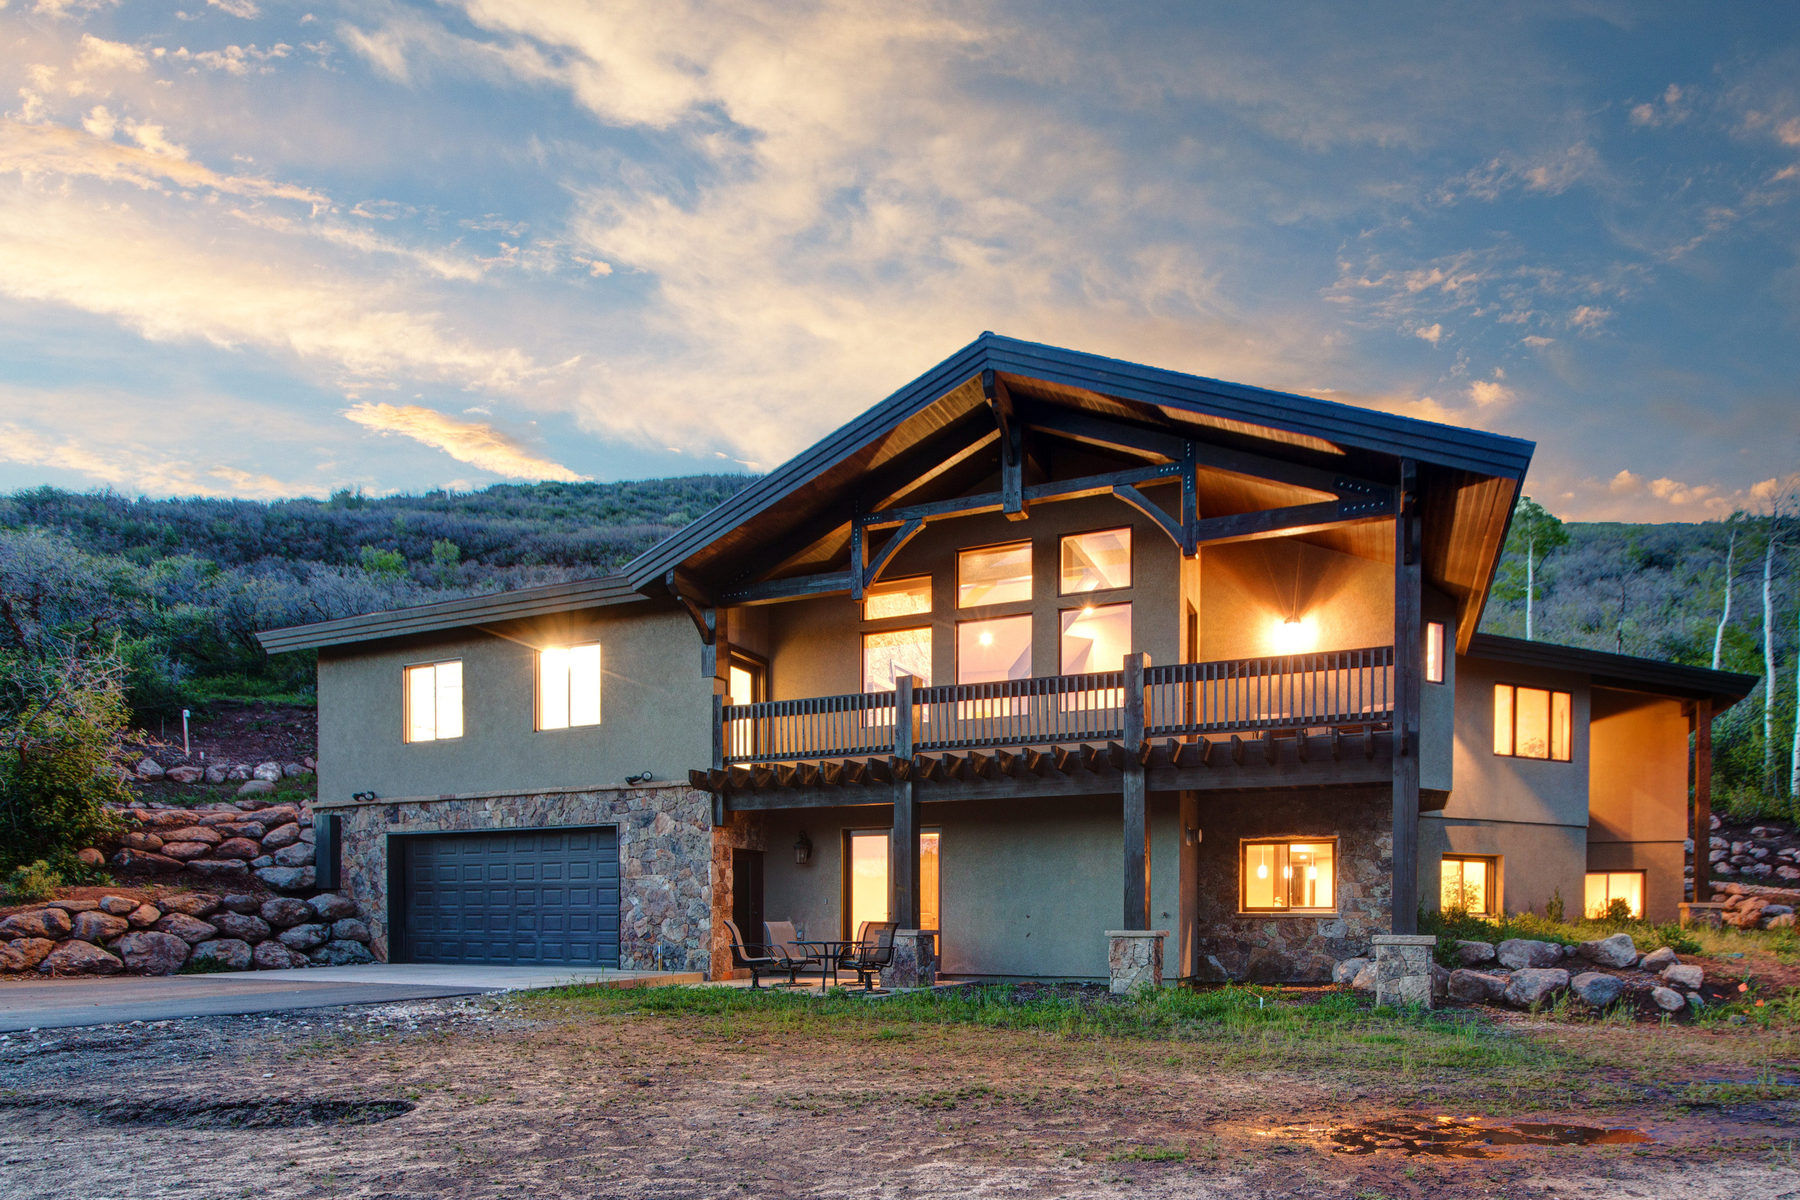 Single Family Home for Sale at Serene Living on 75+ Acres 8001 Parleys Lane Park City, Utah 84098 United States